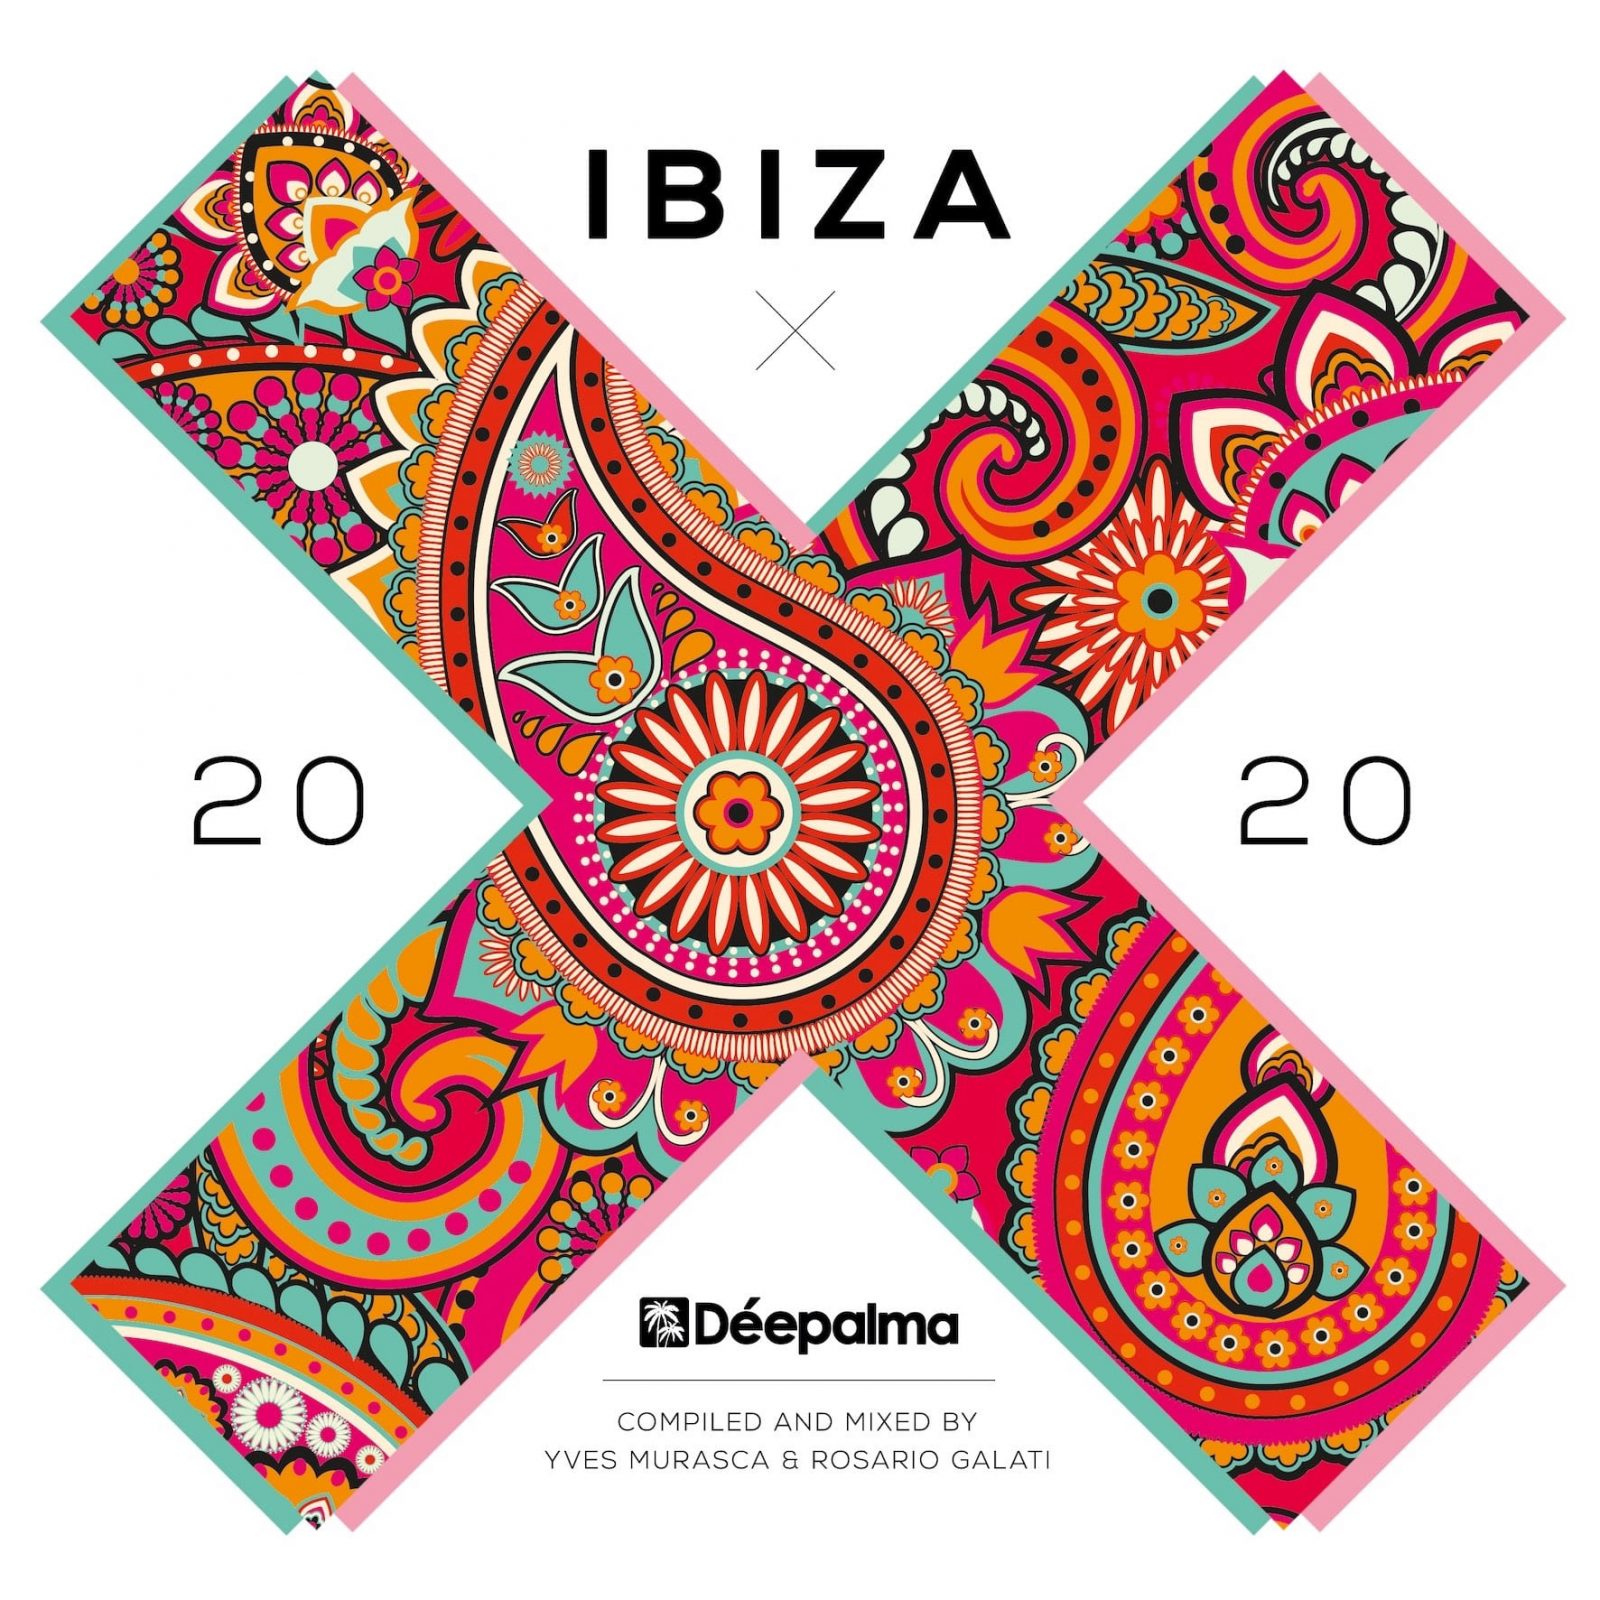 Déepalma Ibiza 2020 - mixed by Yves Murasca and Rosario Galati